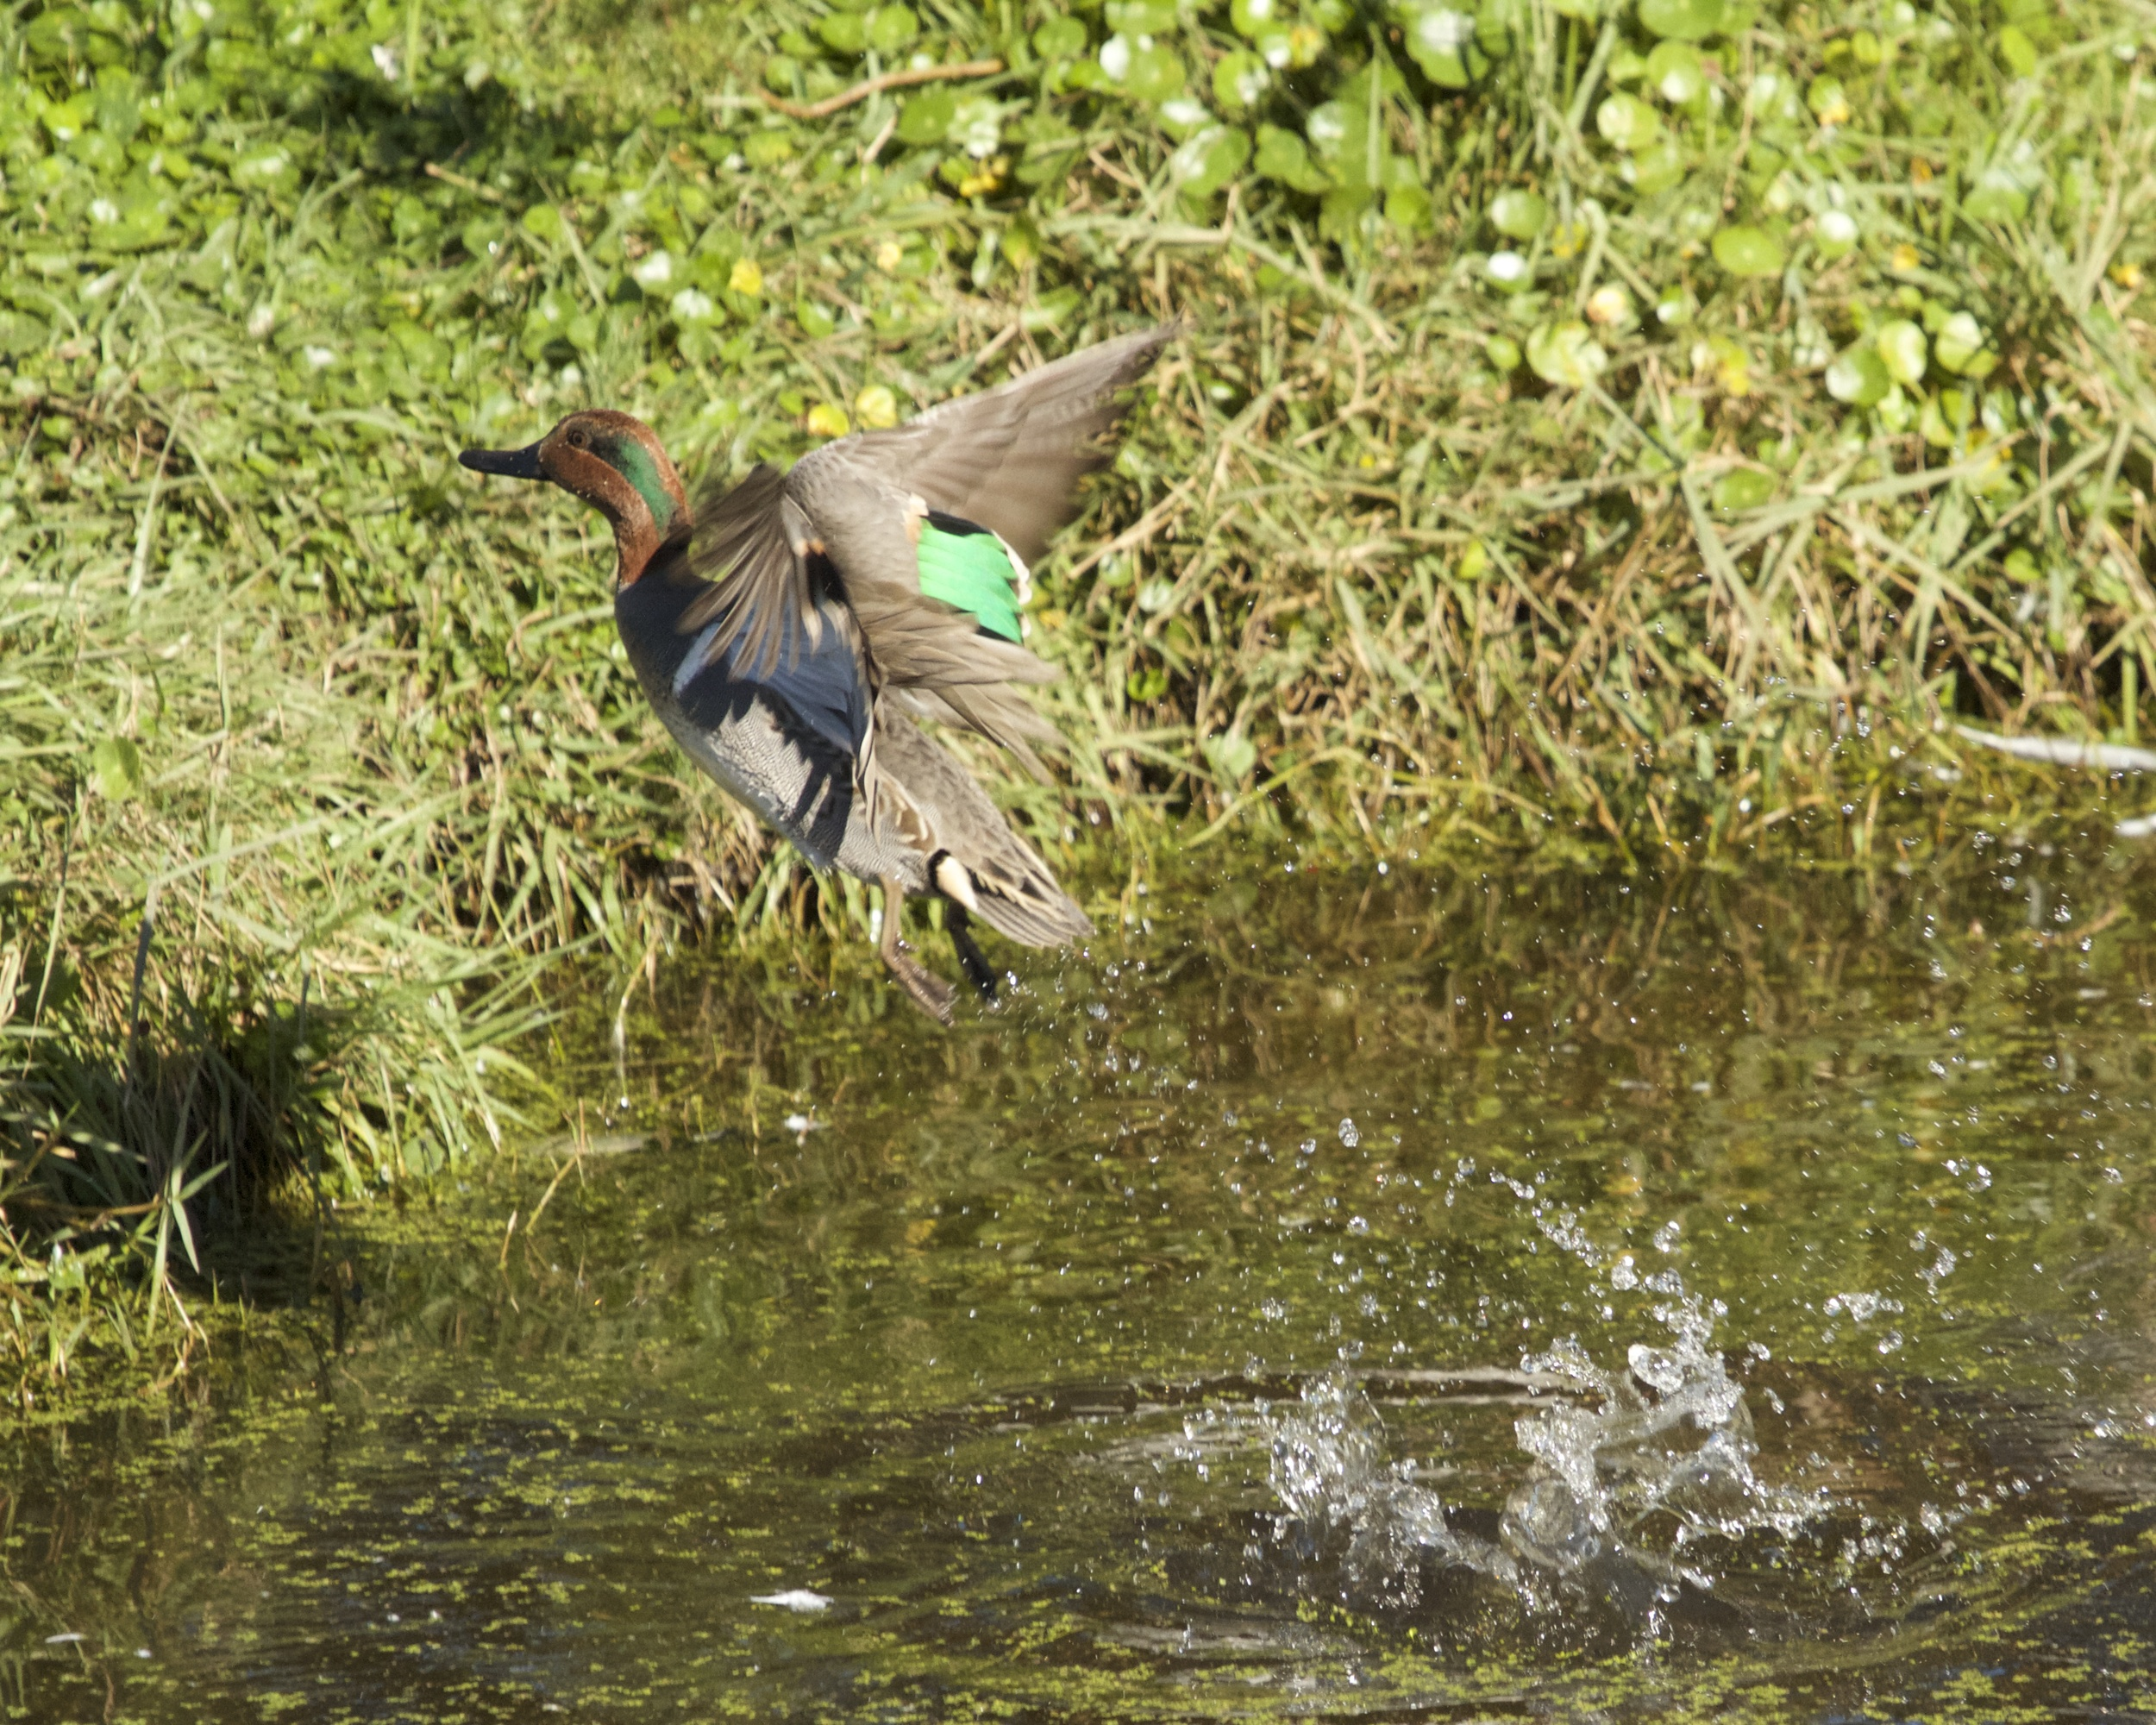 Green Wing Teal blast off!